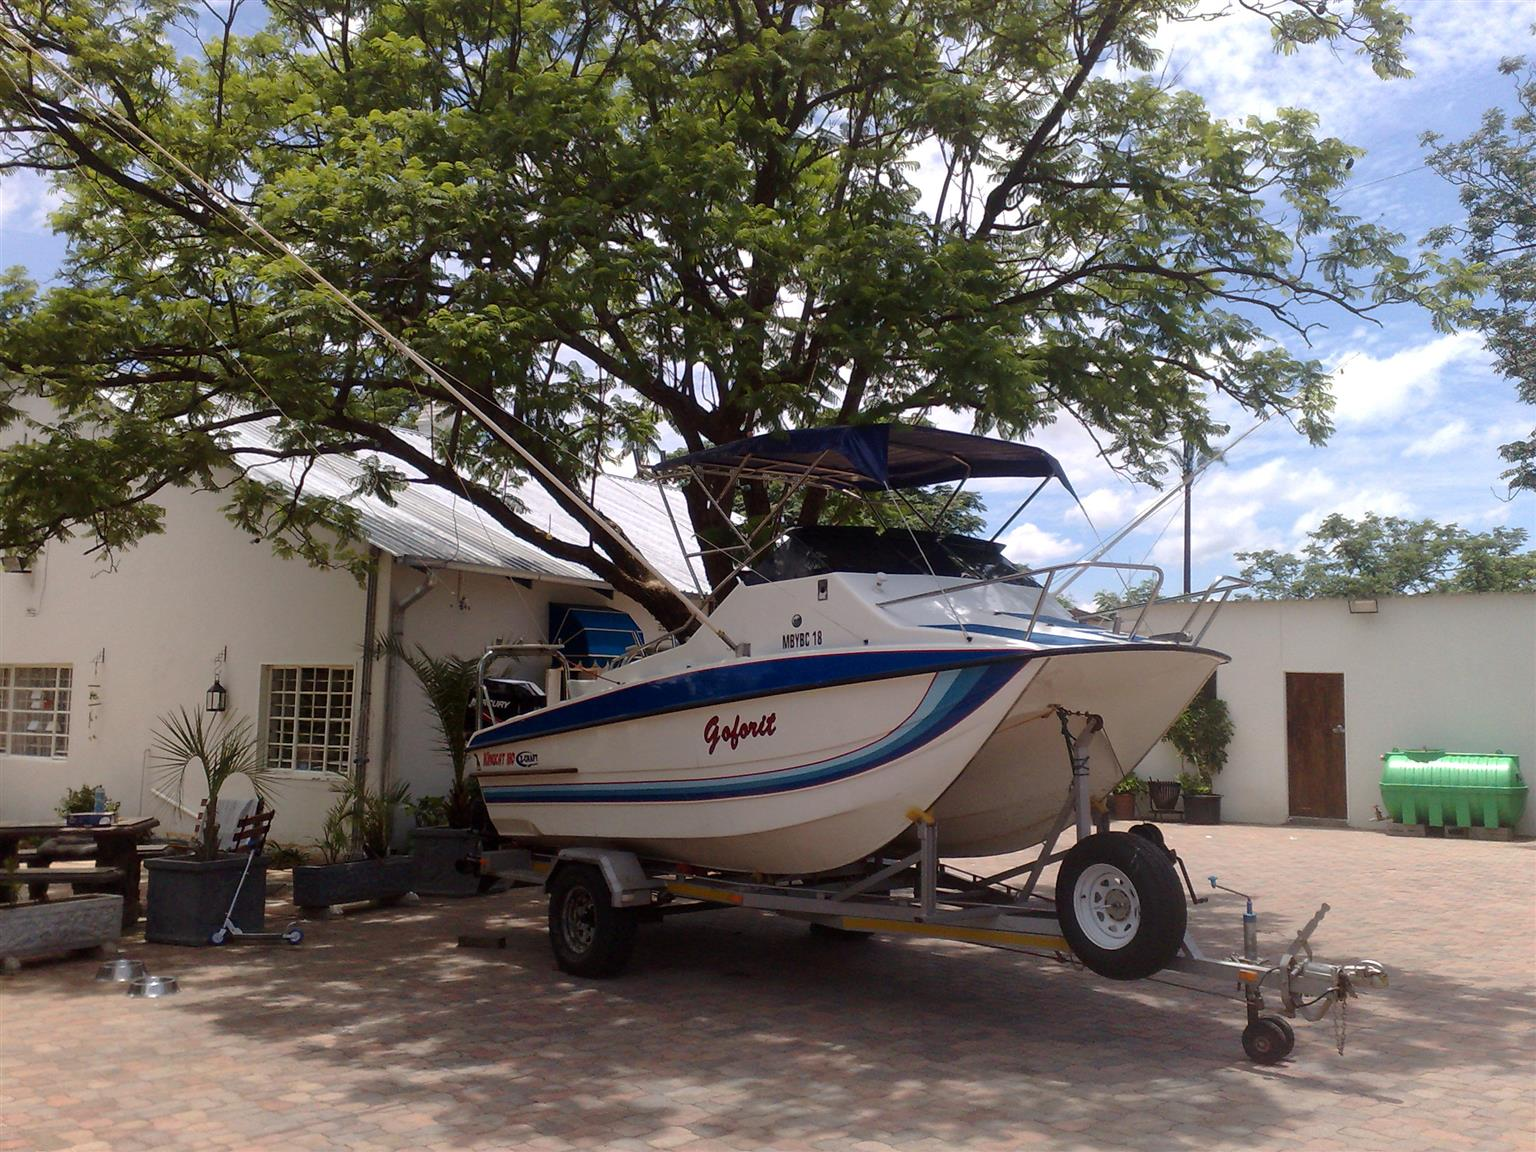 Kingcat 180 completely set up for marlin fishing